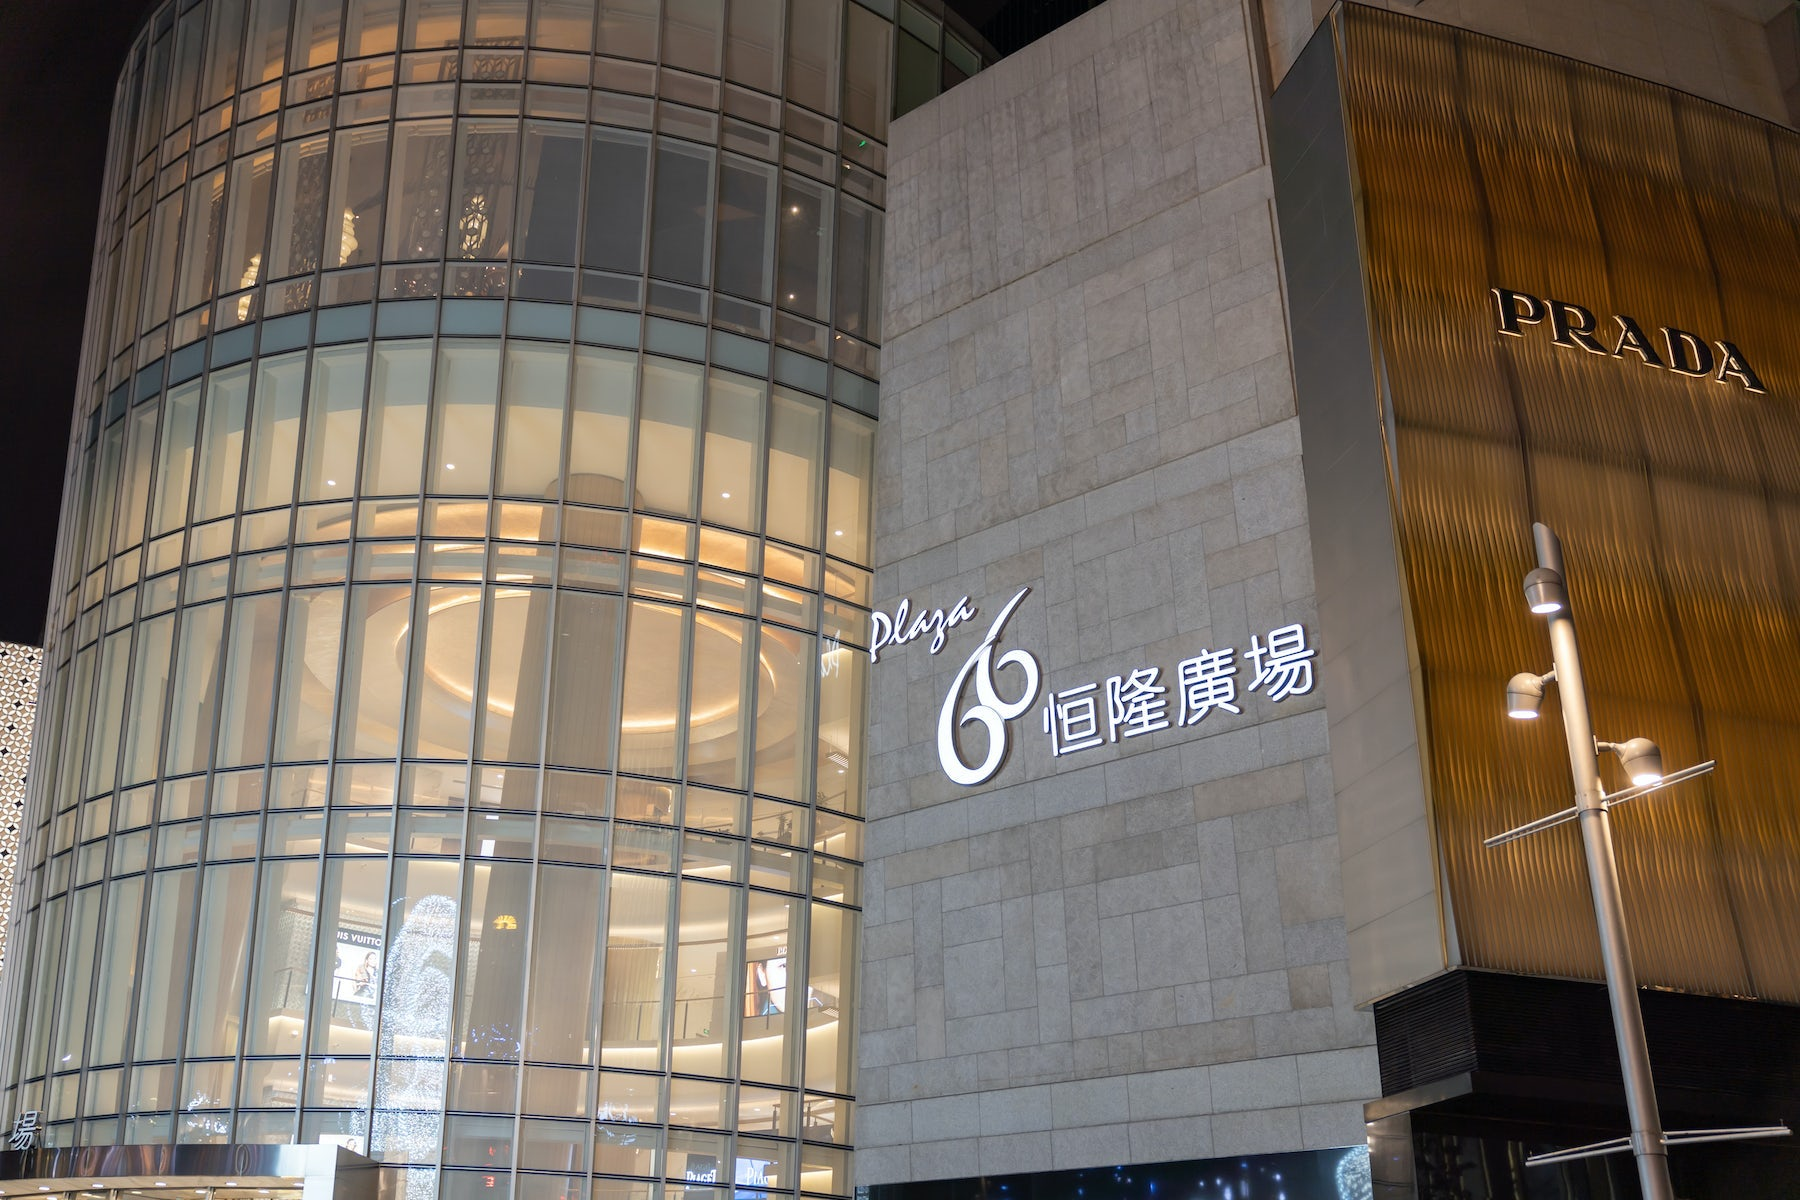 The exterior and main entrance of Plaza 66 in Shanghai. Shutterstock.